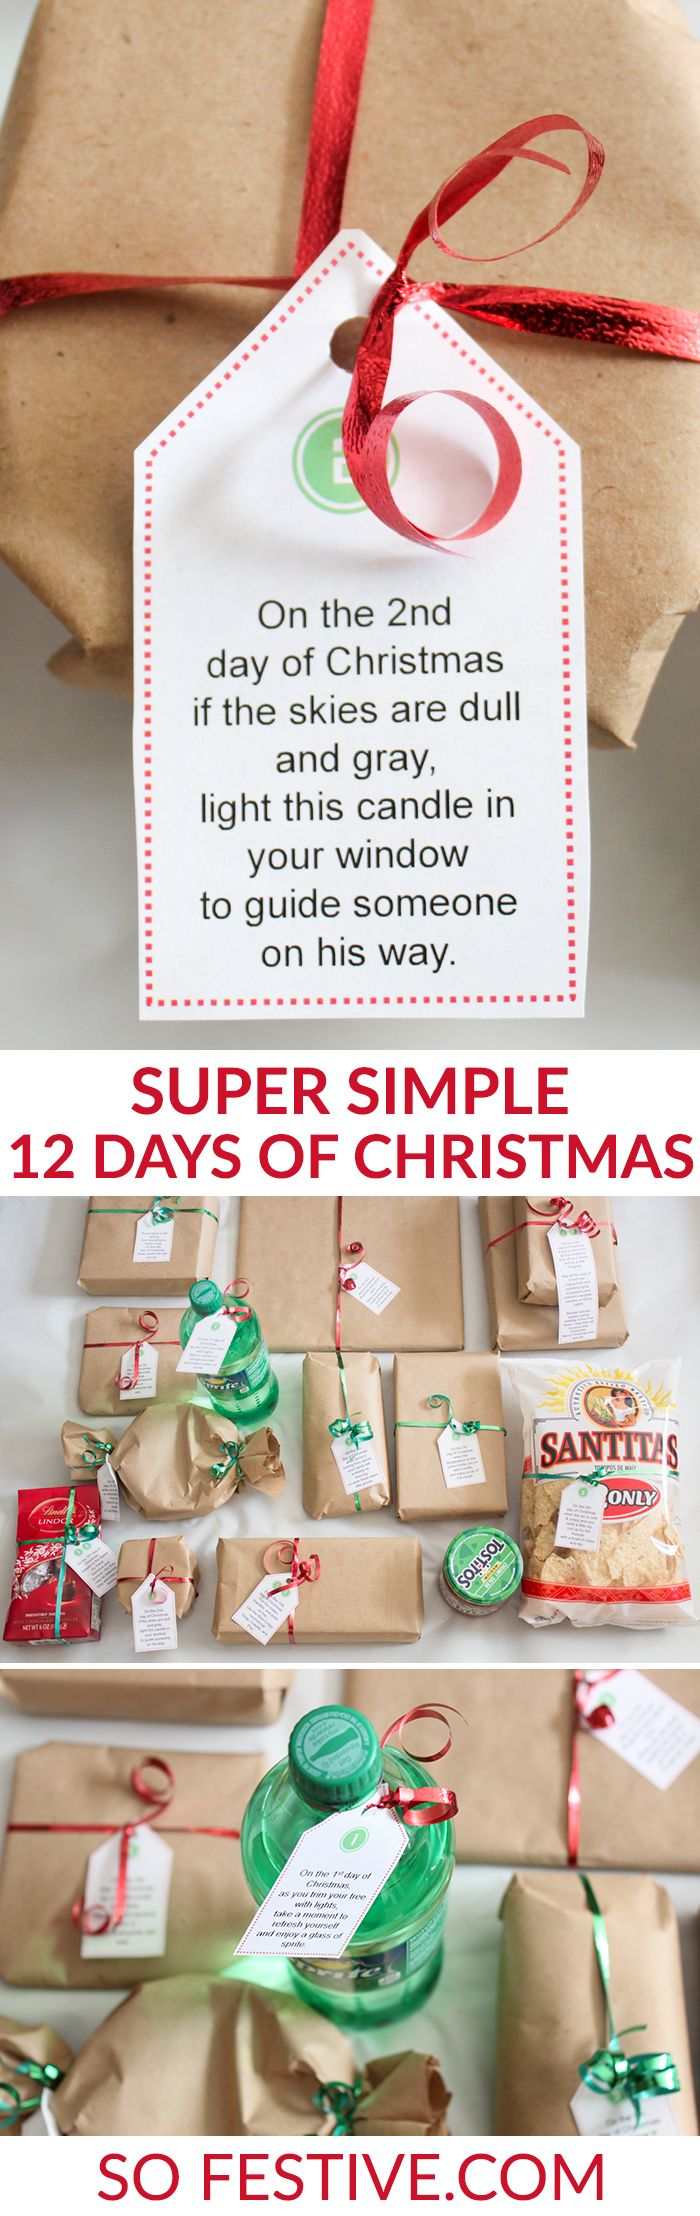 Easy 12 Days of Christmas Idea + printable poem tags. Many of the gifts can be found at the grocery or dollar store! A cute and simple way to spread some holiday cheer!